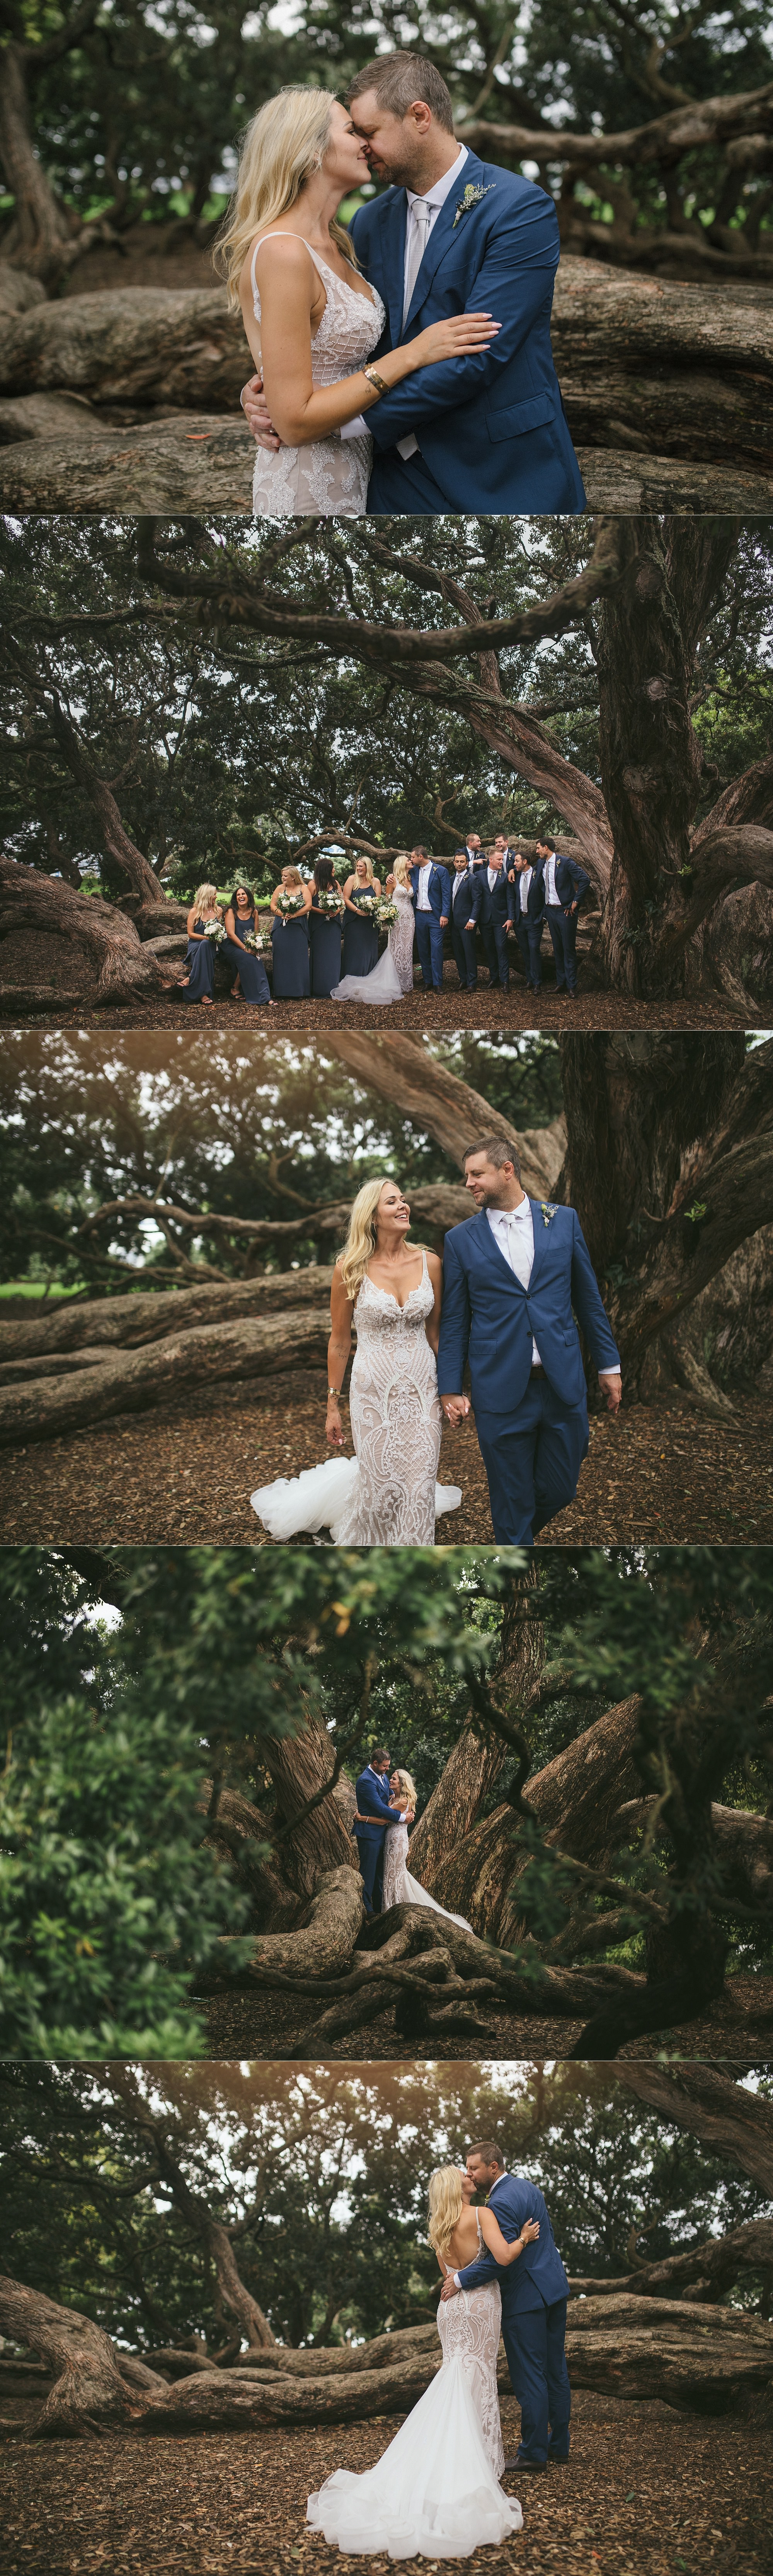 Cibo wedding photos